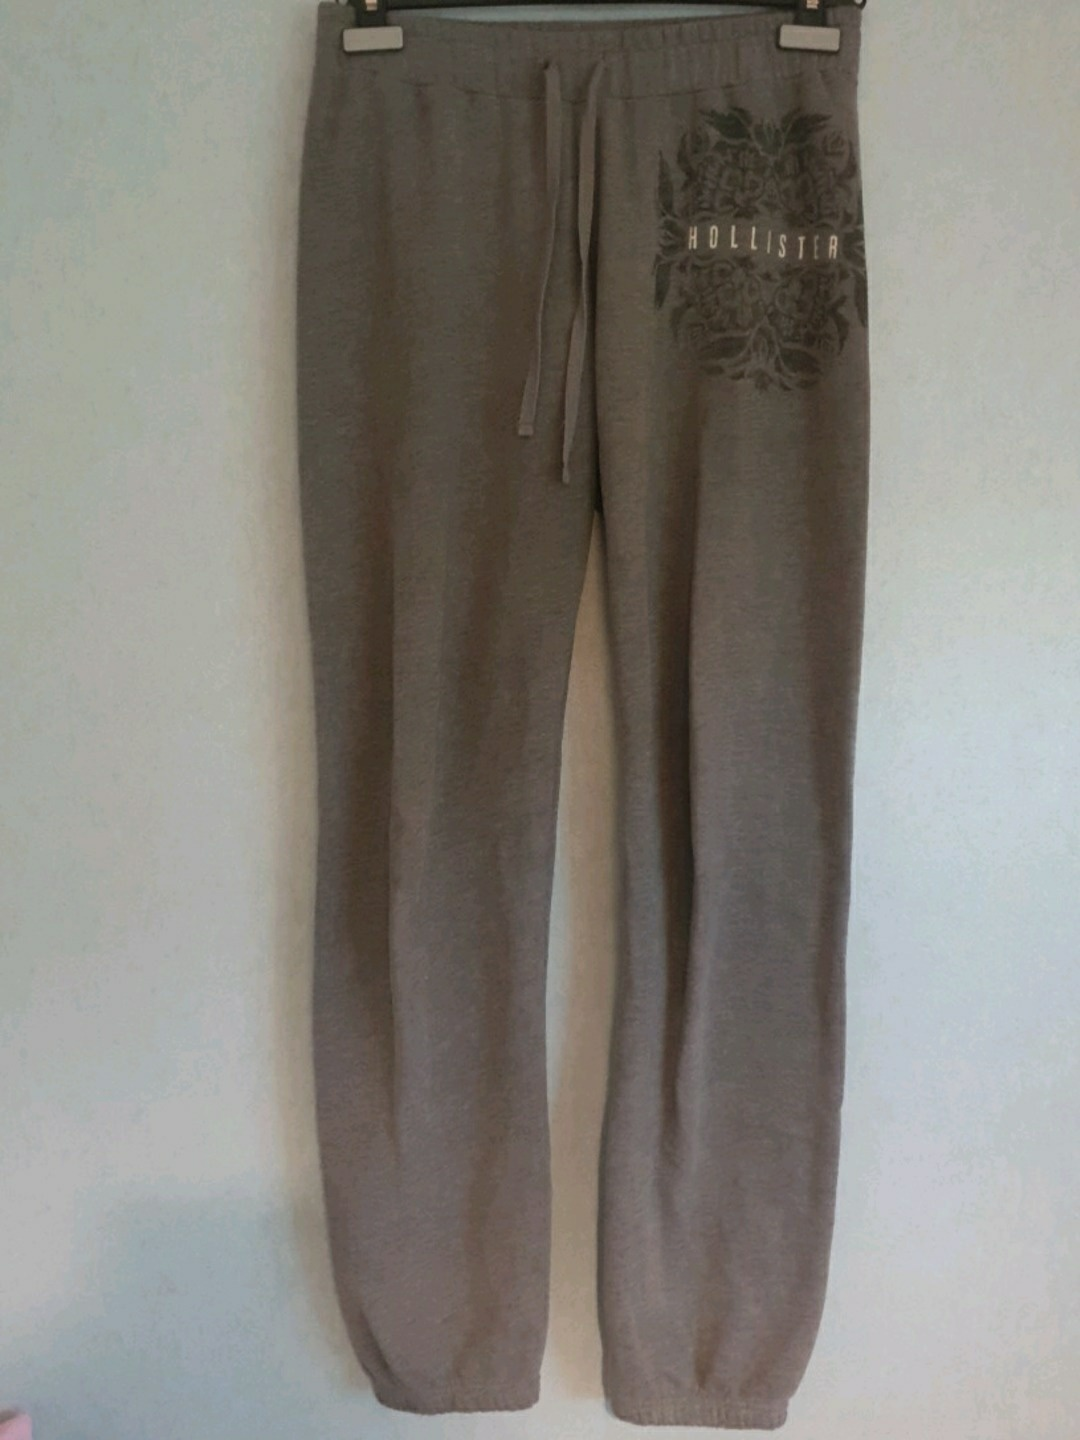 Women's trousers & jeans - HOLLISTER photo 2